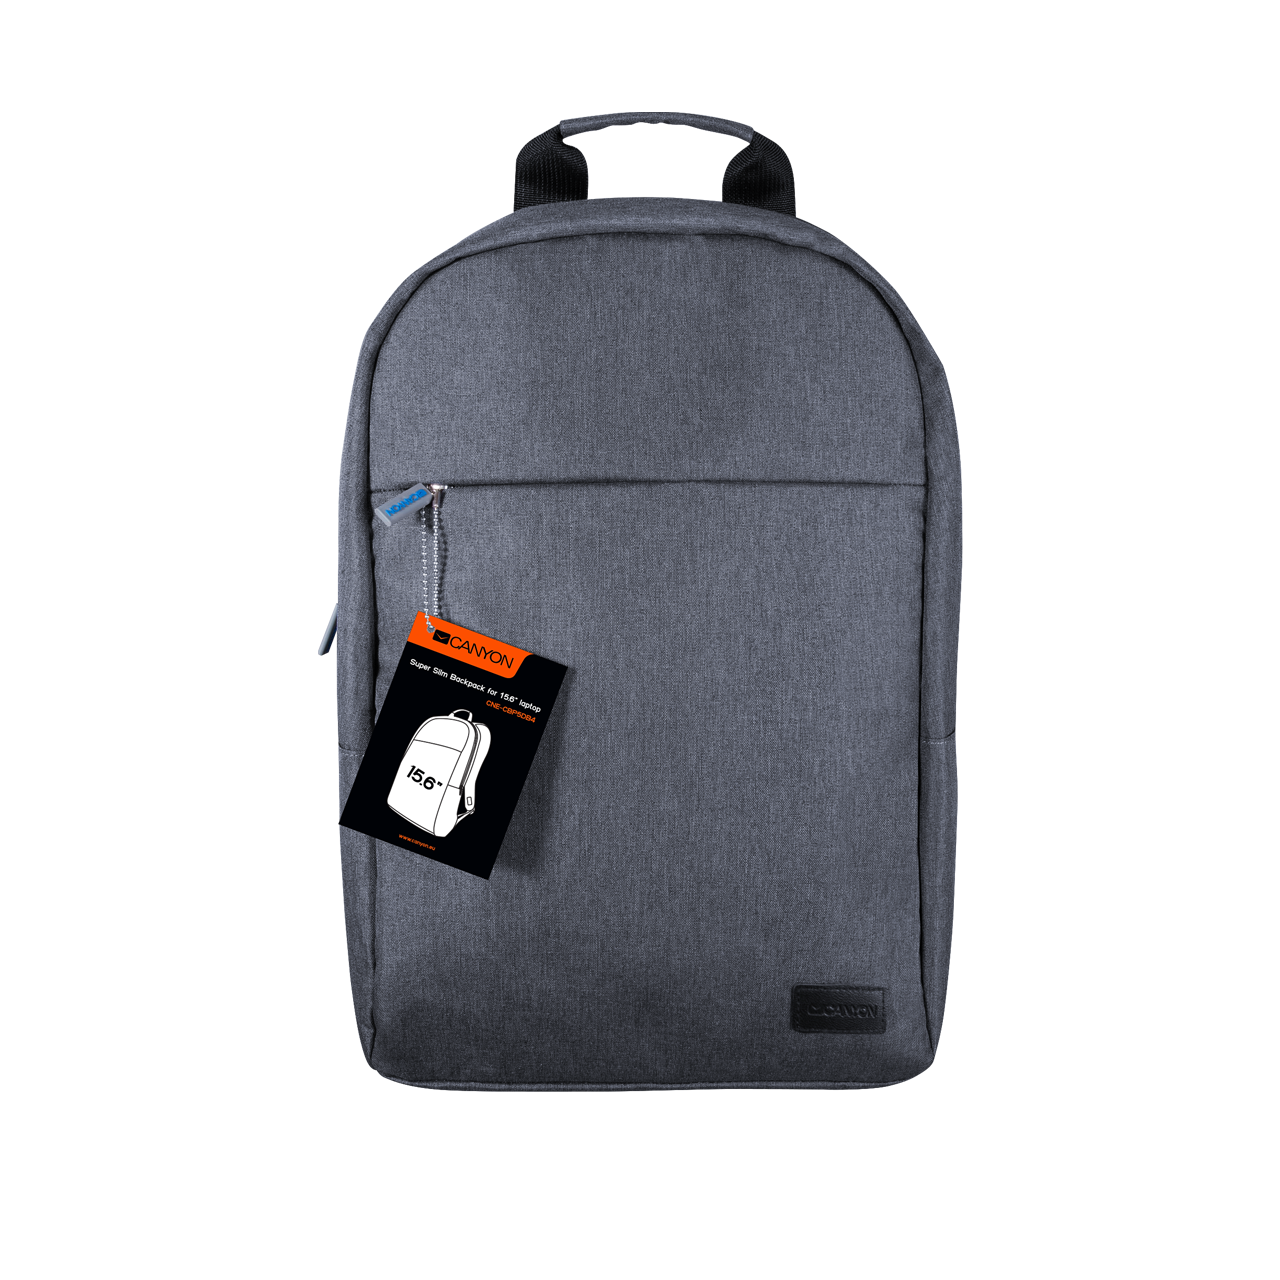 Сумка для ноутбука CANYON Super Slim Minimalistic Backpack for 15.6` laptops. (GSCNECBP5DB4) фото в интернет-магазине